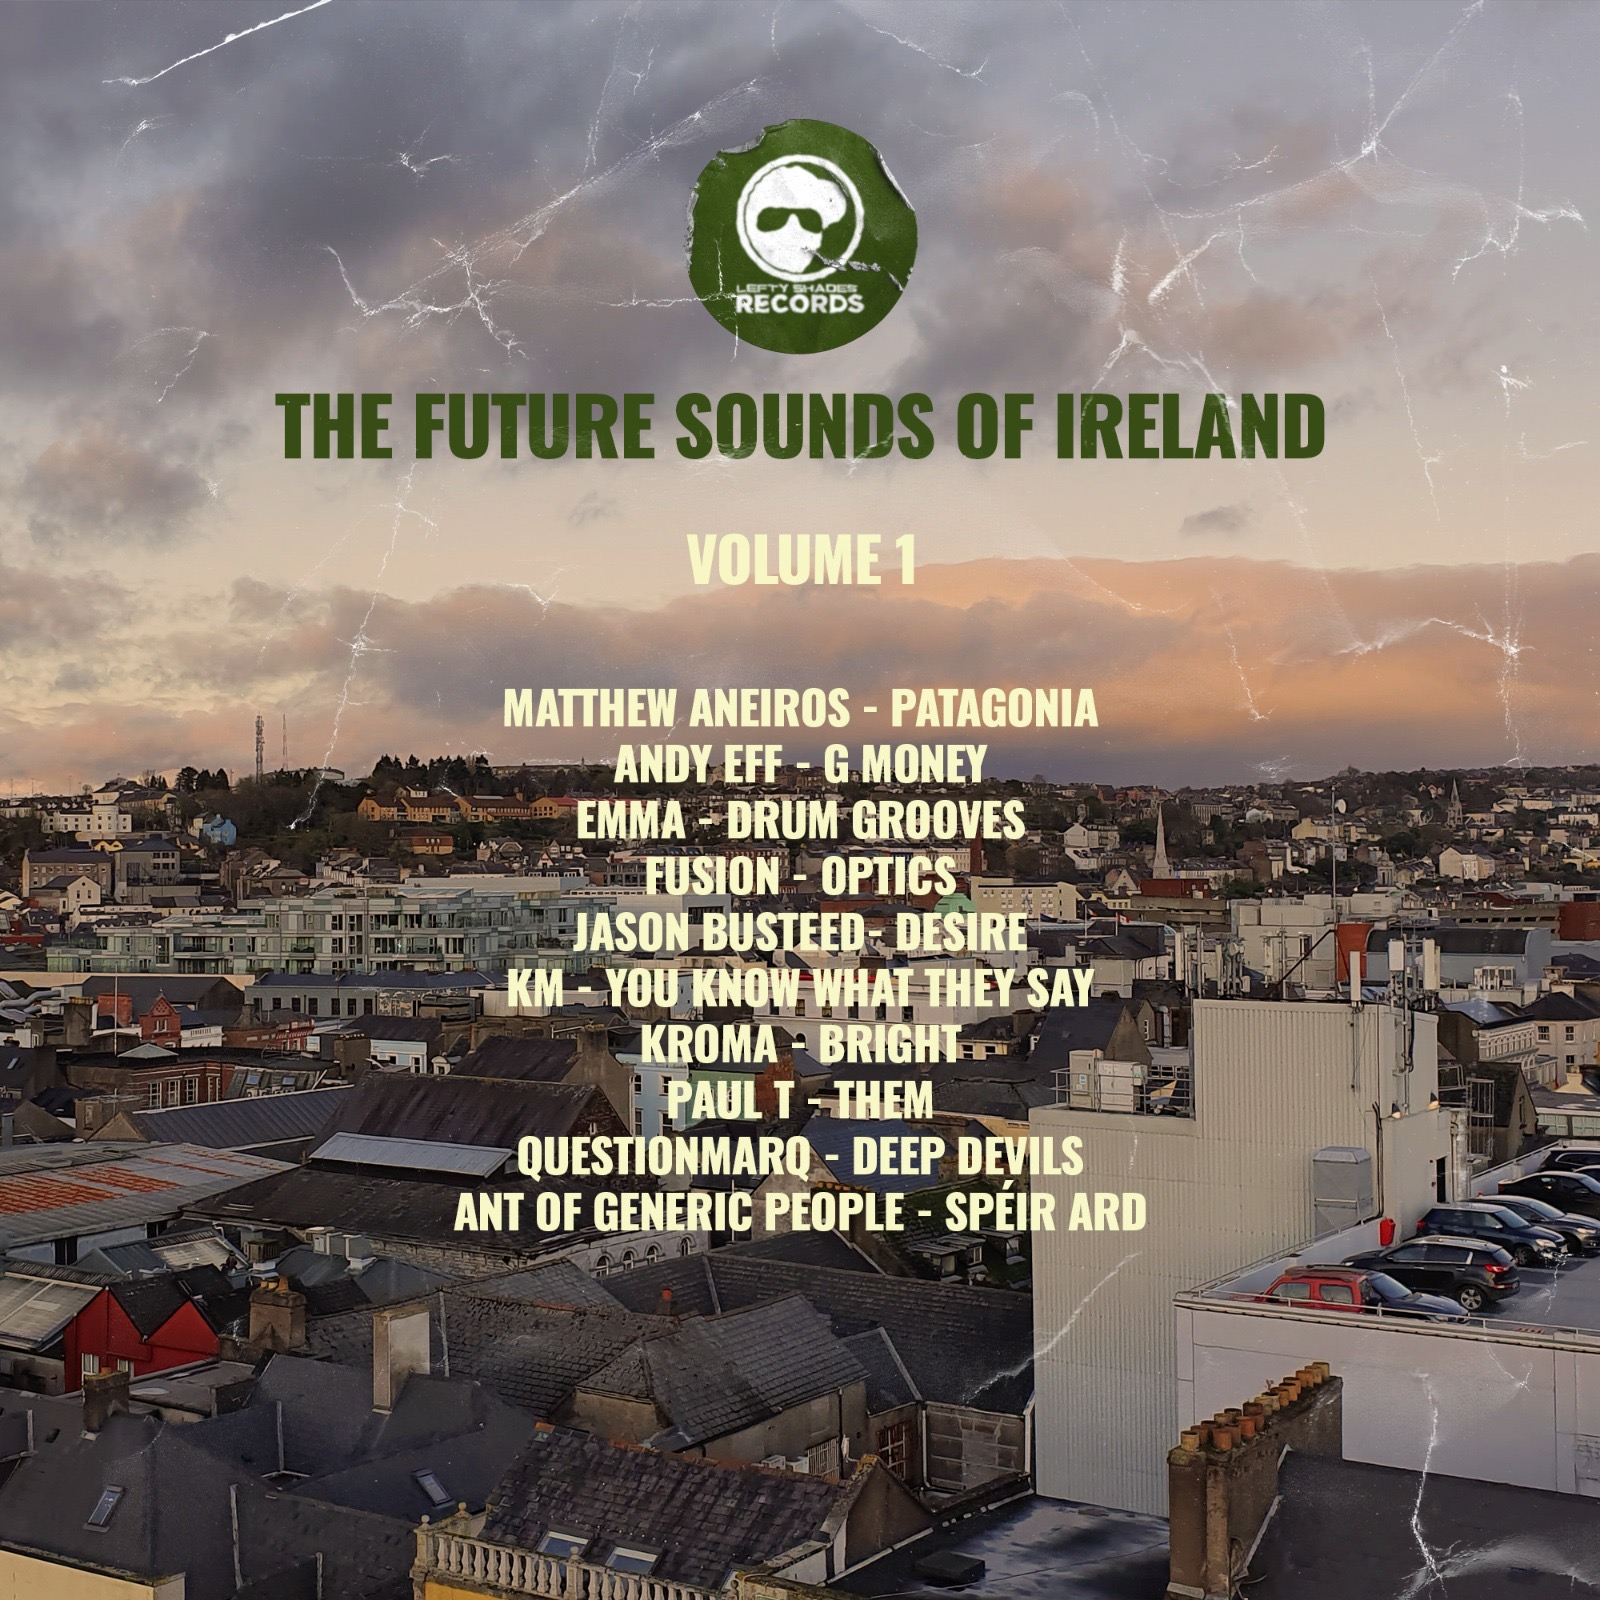 THIS IS 'THE FUTURE SOUNDS OF IRELAND'